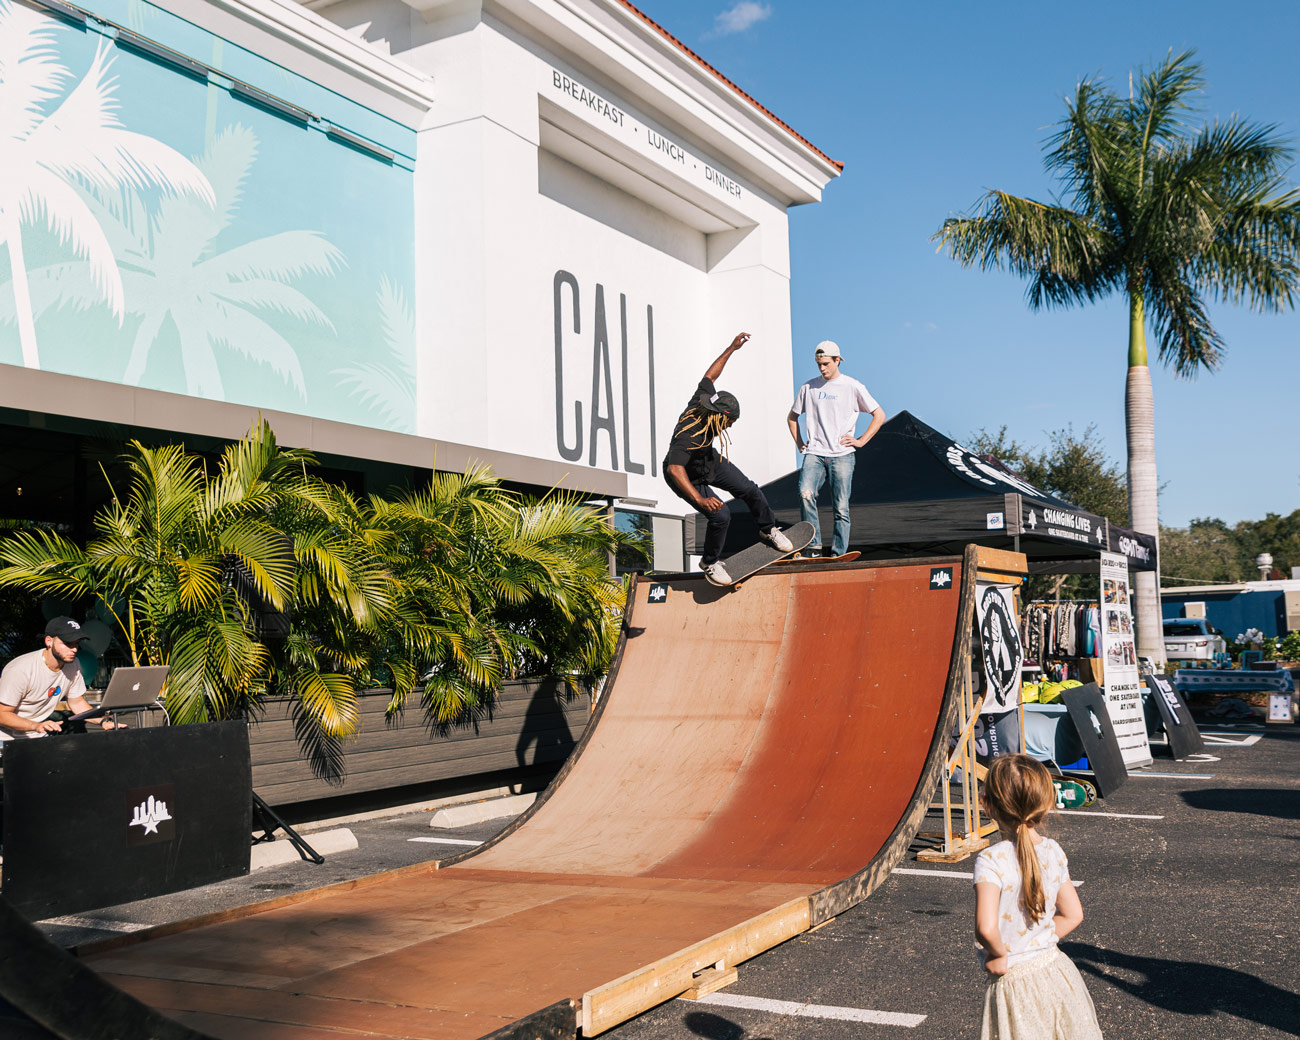 Skateboarding event outside of Cali restaurant